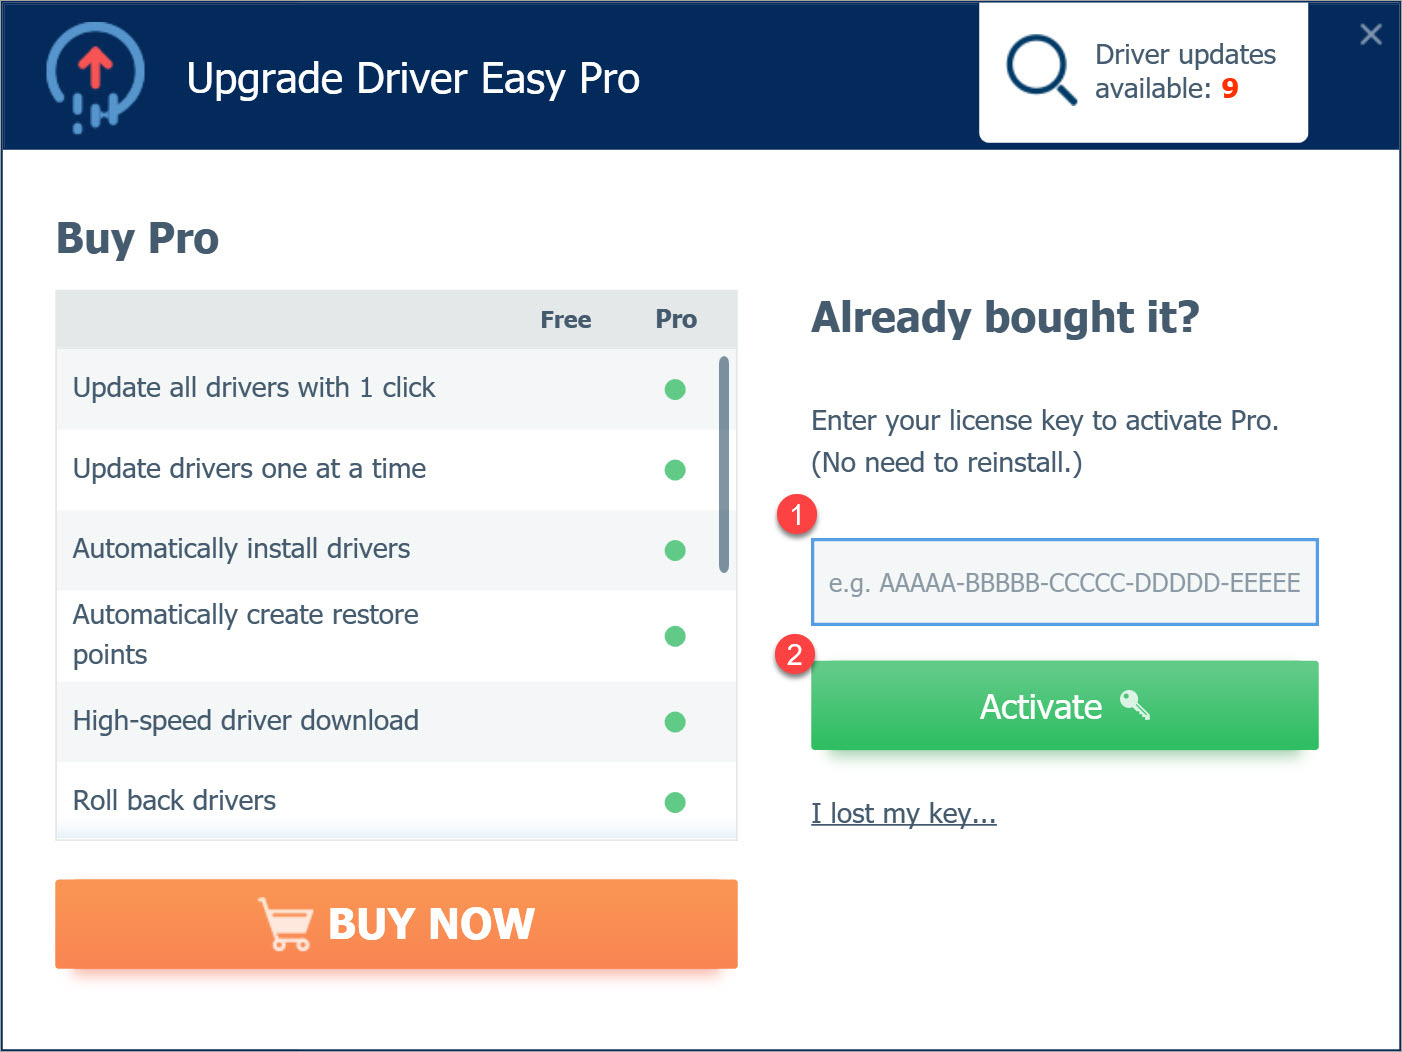 Upgrade to Driver Easy Pro enter license